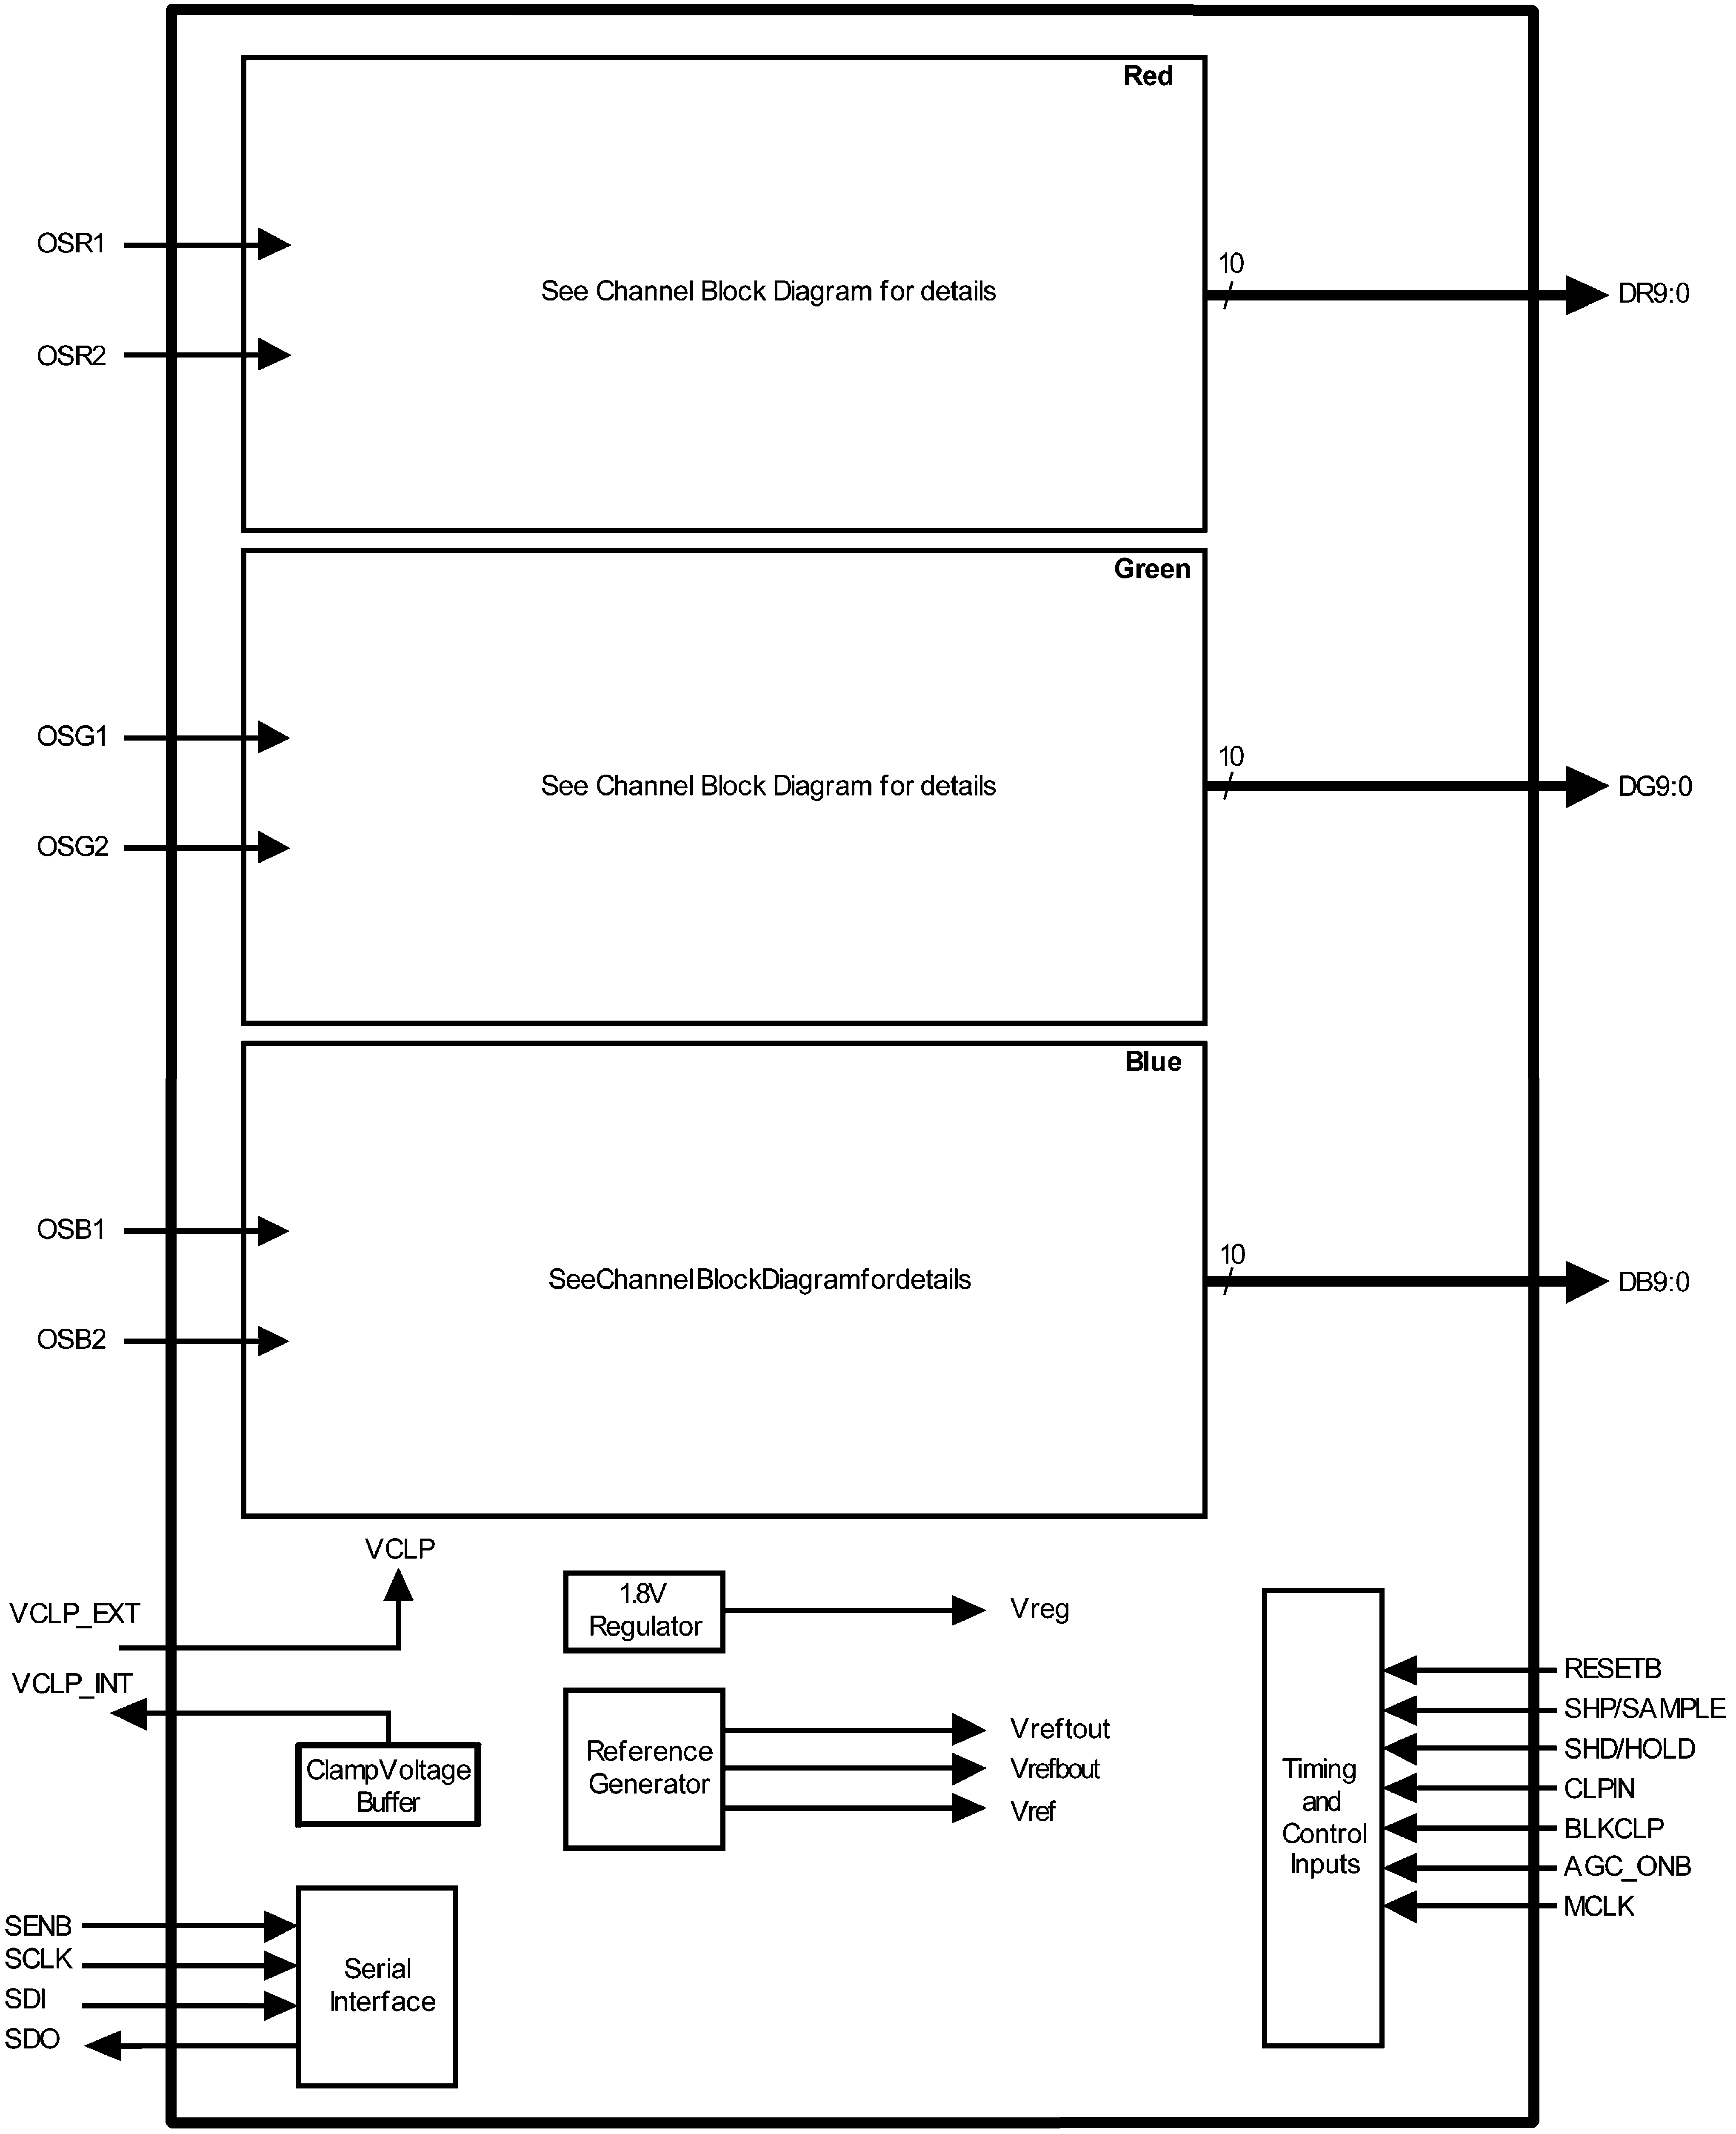 Lm98519 Wiring Diagram Further Propane Phase Additionally How To Wire Chip Block